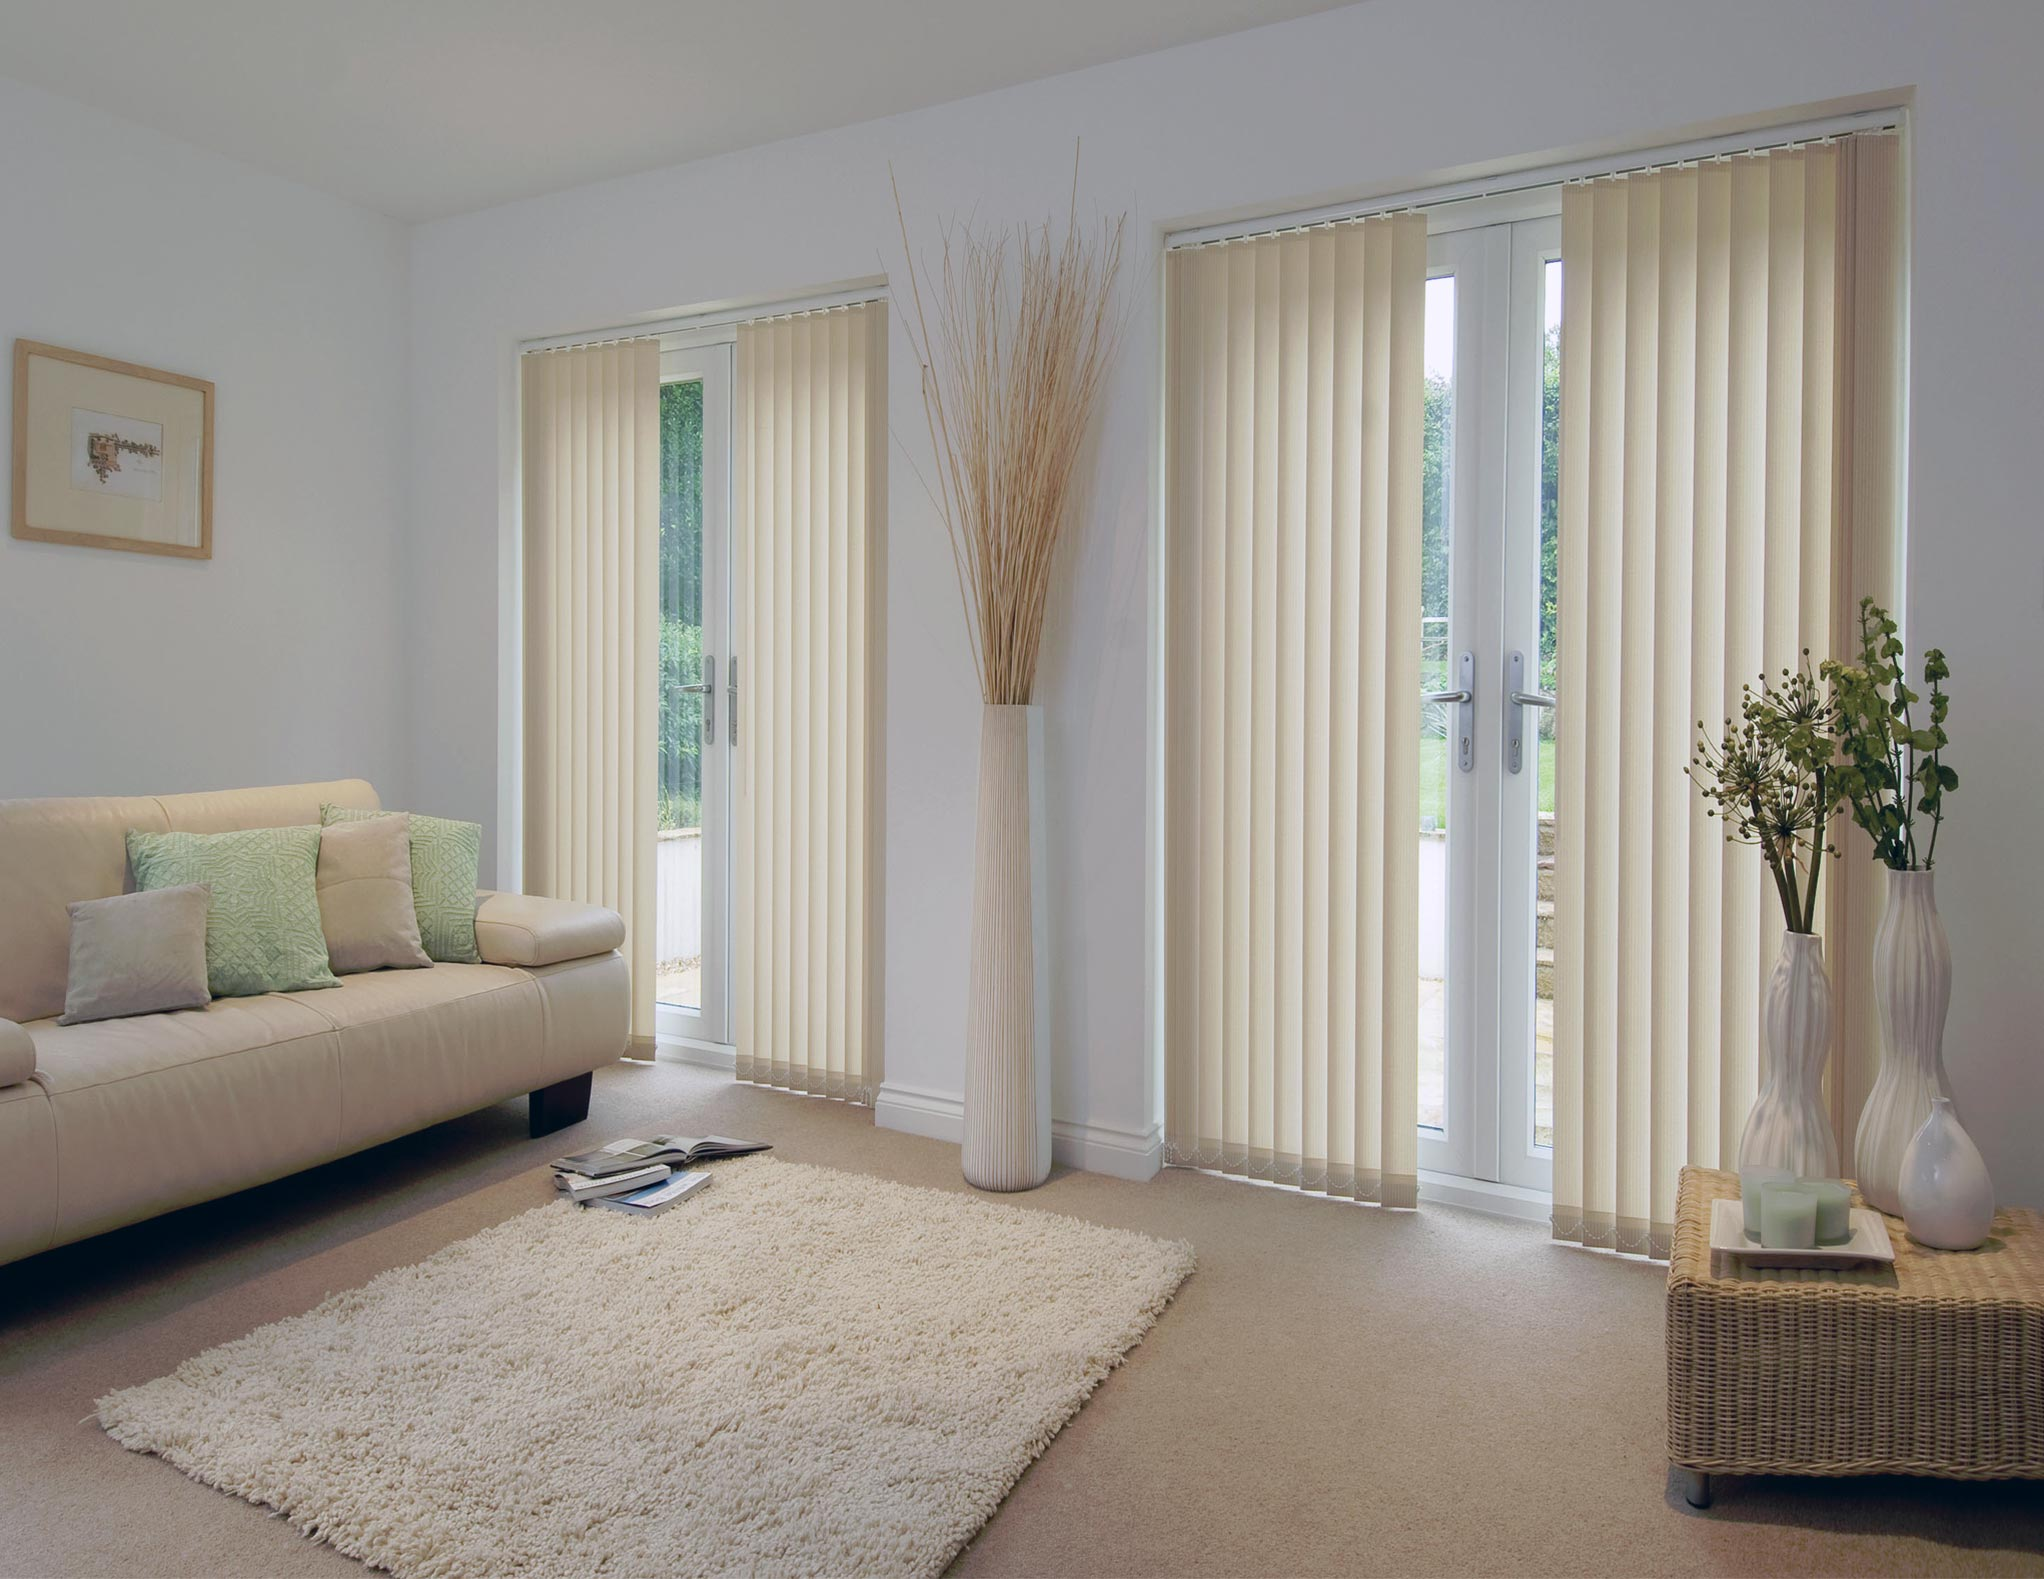 Bedroom Blinds Ideas Set Property decorating inspiring levolor blinds for window decor ideas